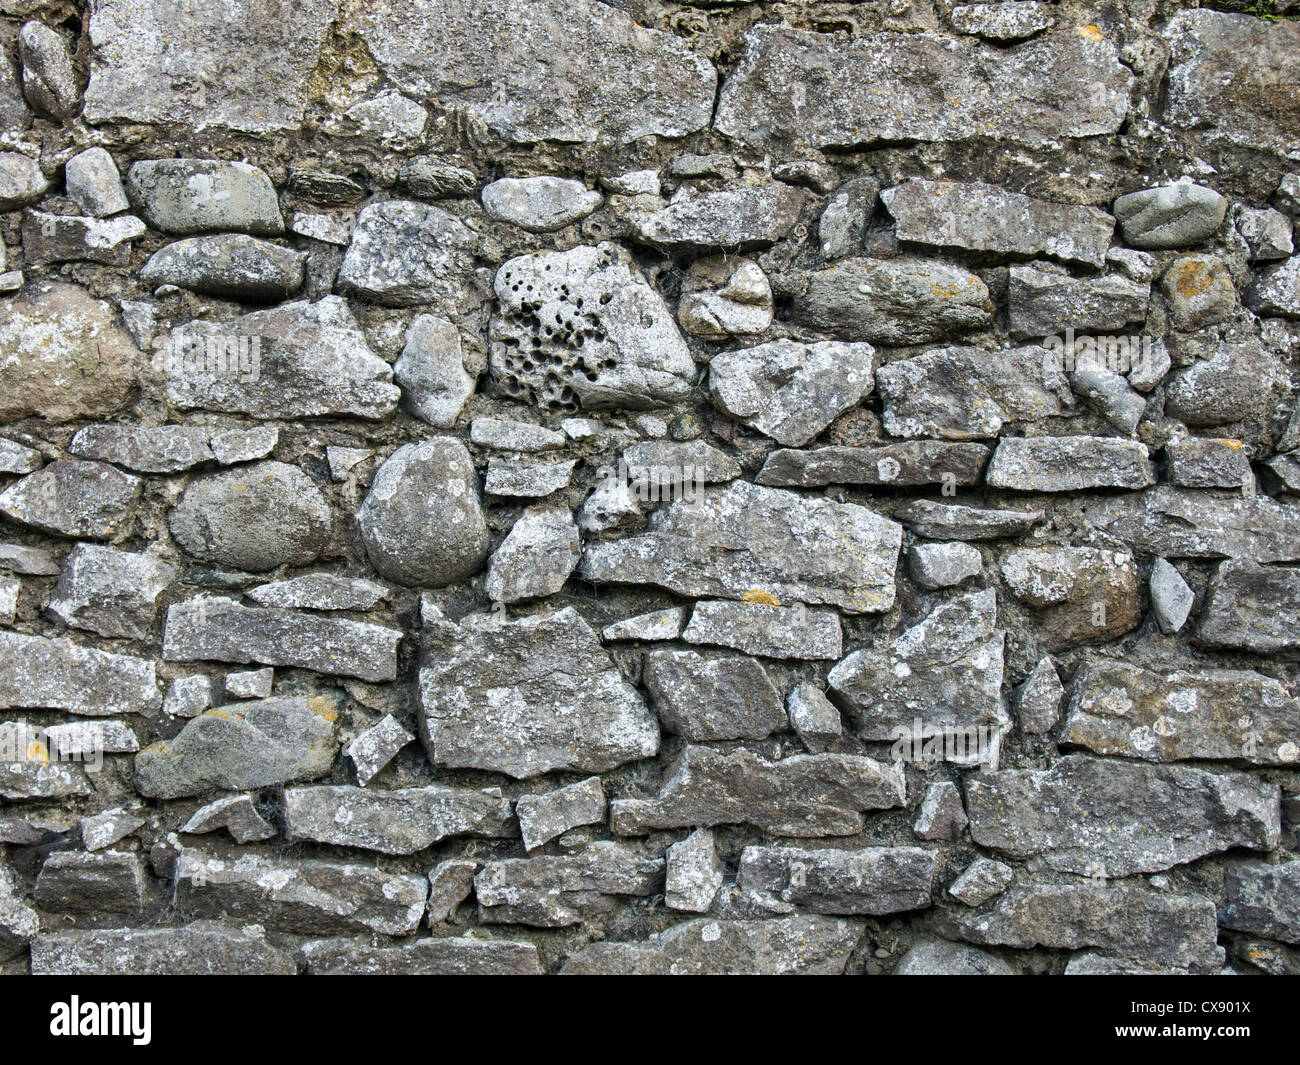 Rubble Stone Wall : A section of typical rubble built stone wall in an irish